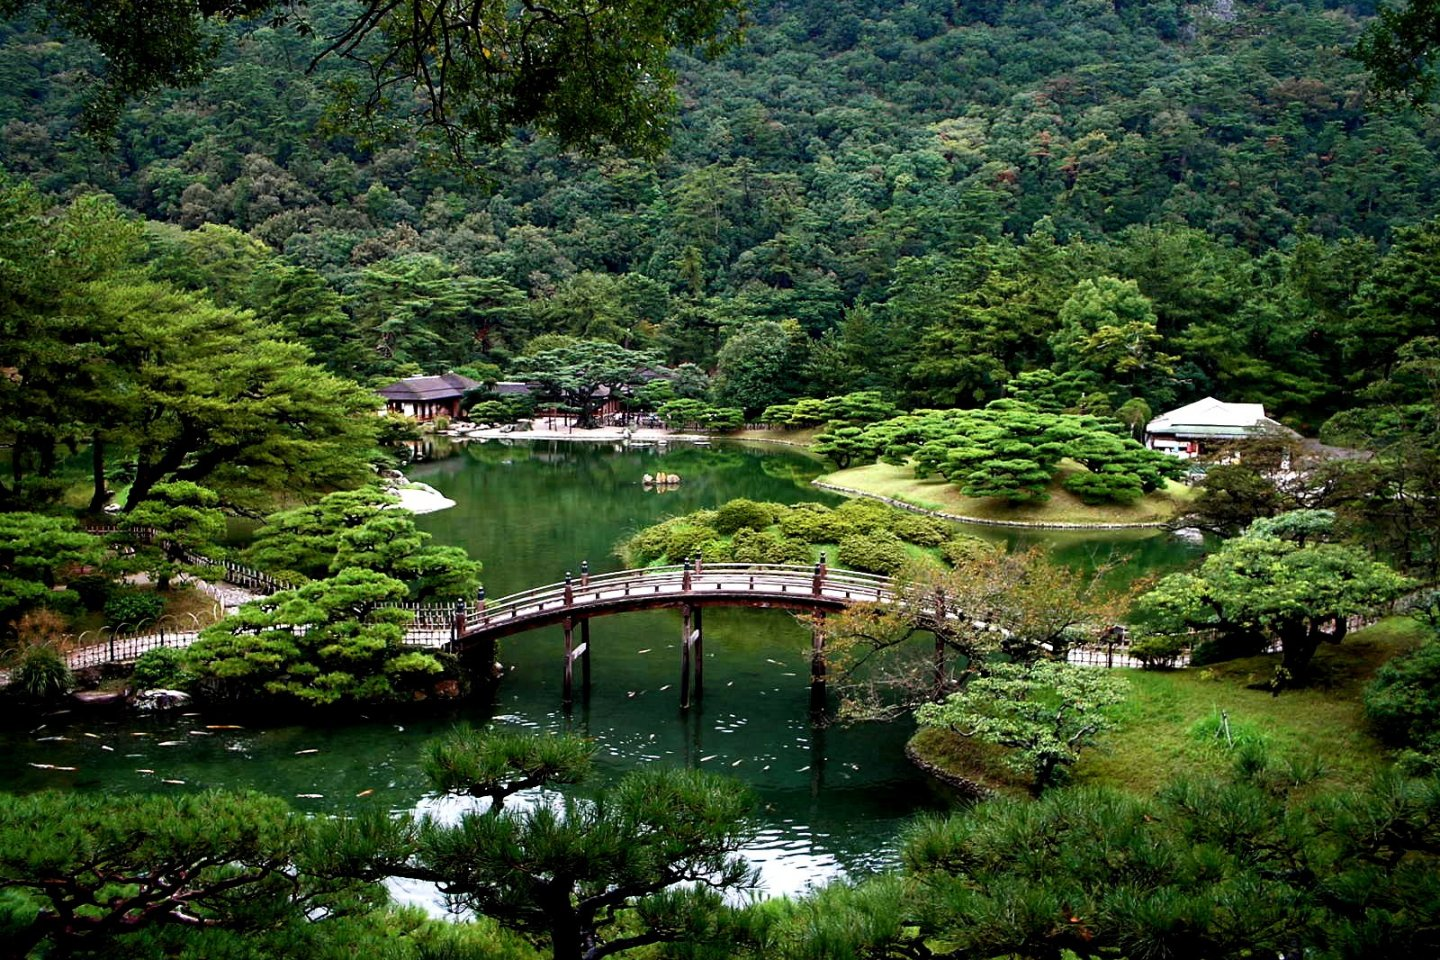 Ritsurin Garden - just one of the attractions to enjoy in Shikoku